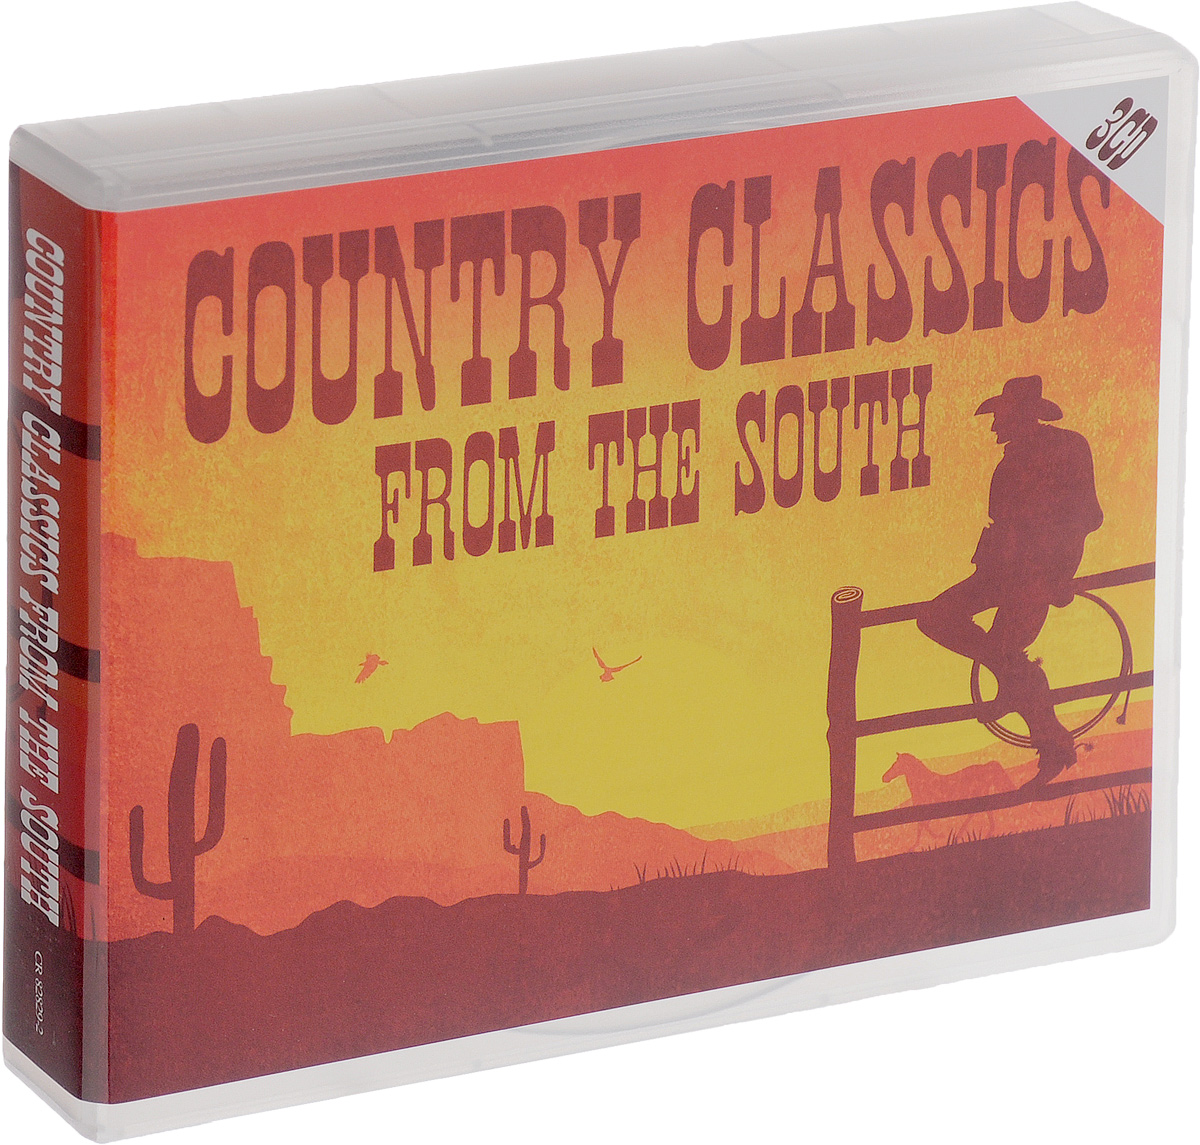 Country Classics From The South (3 CD)